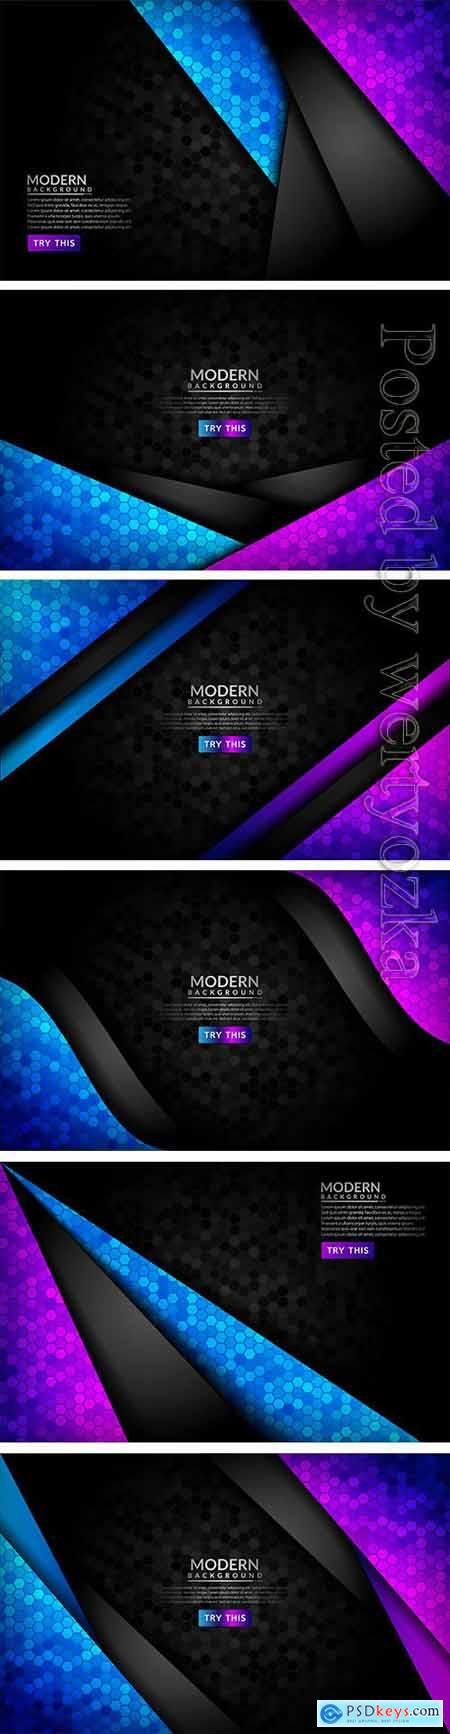 Abstract 3d dark background with purple and blue gradient